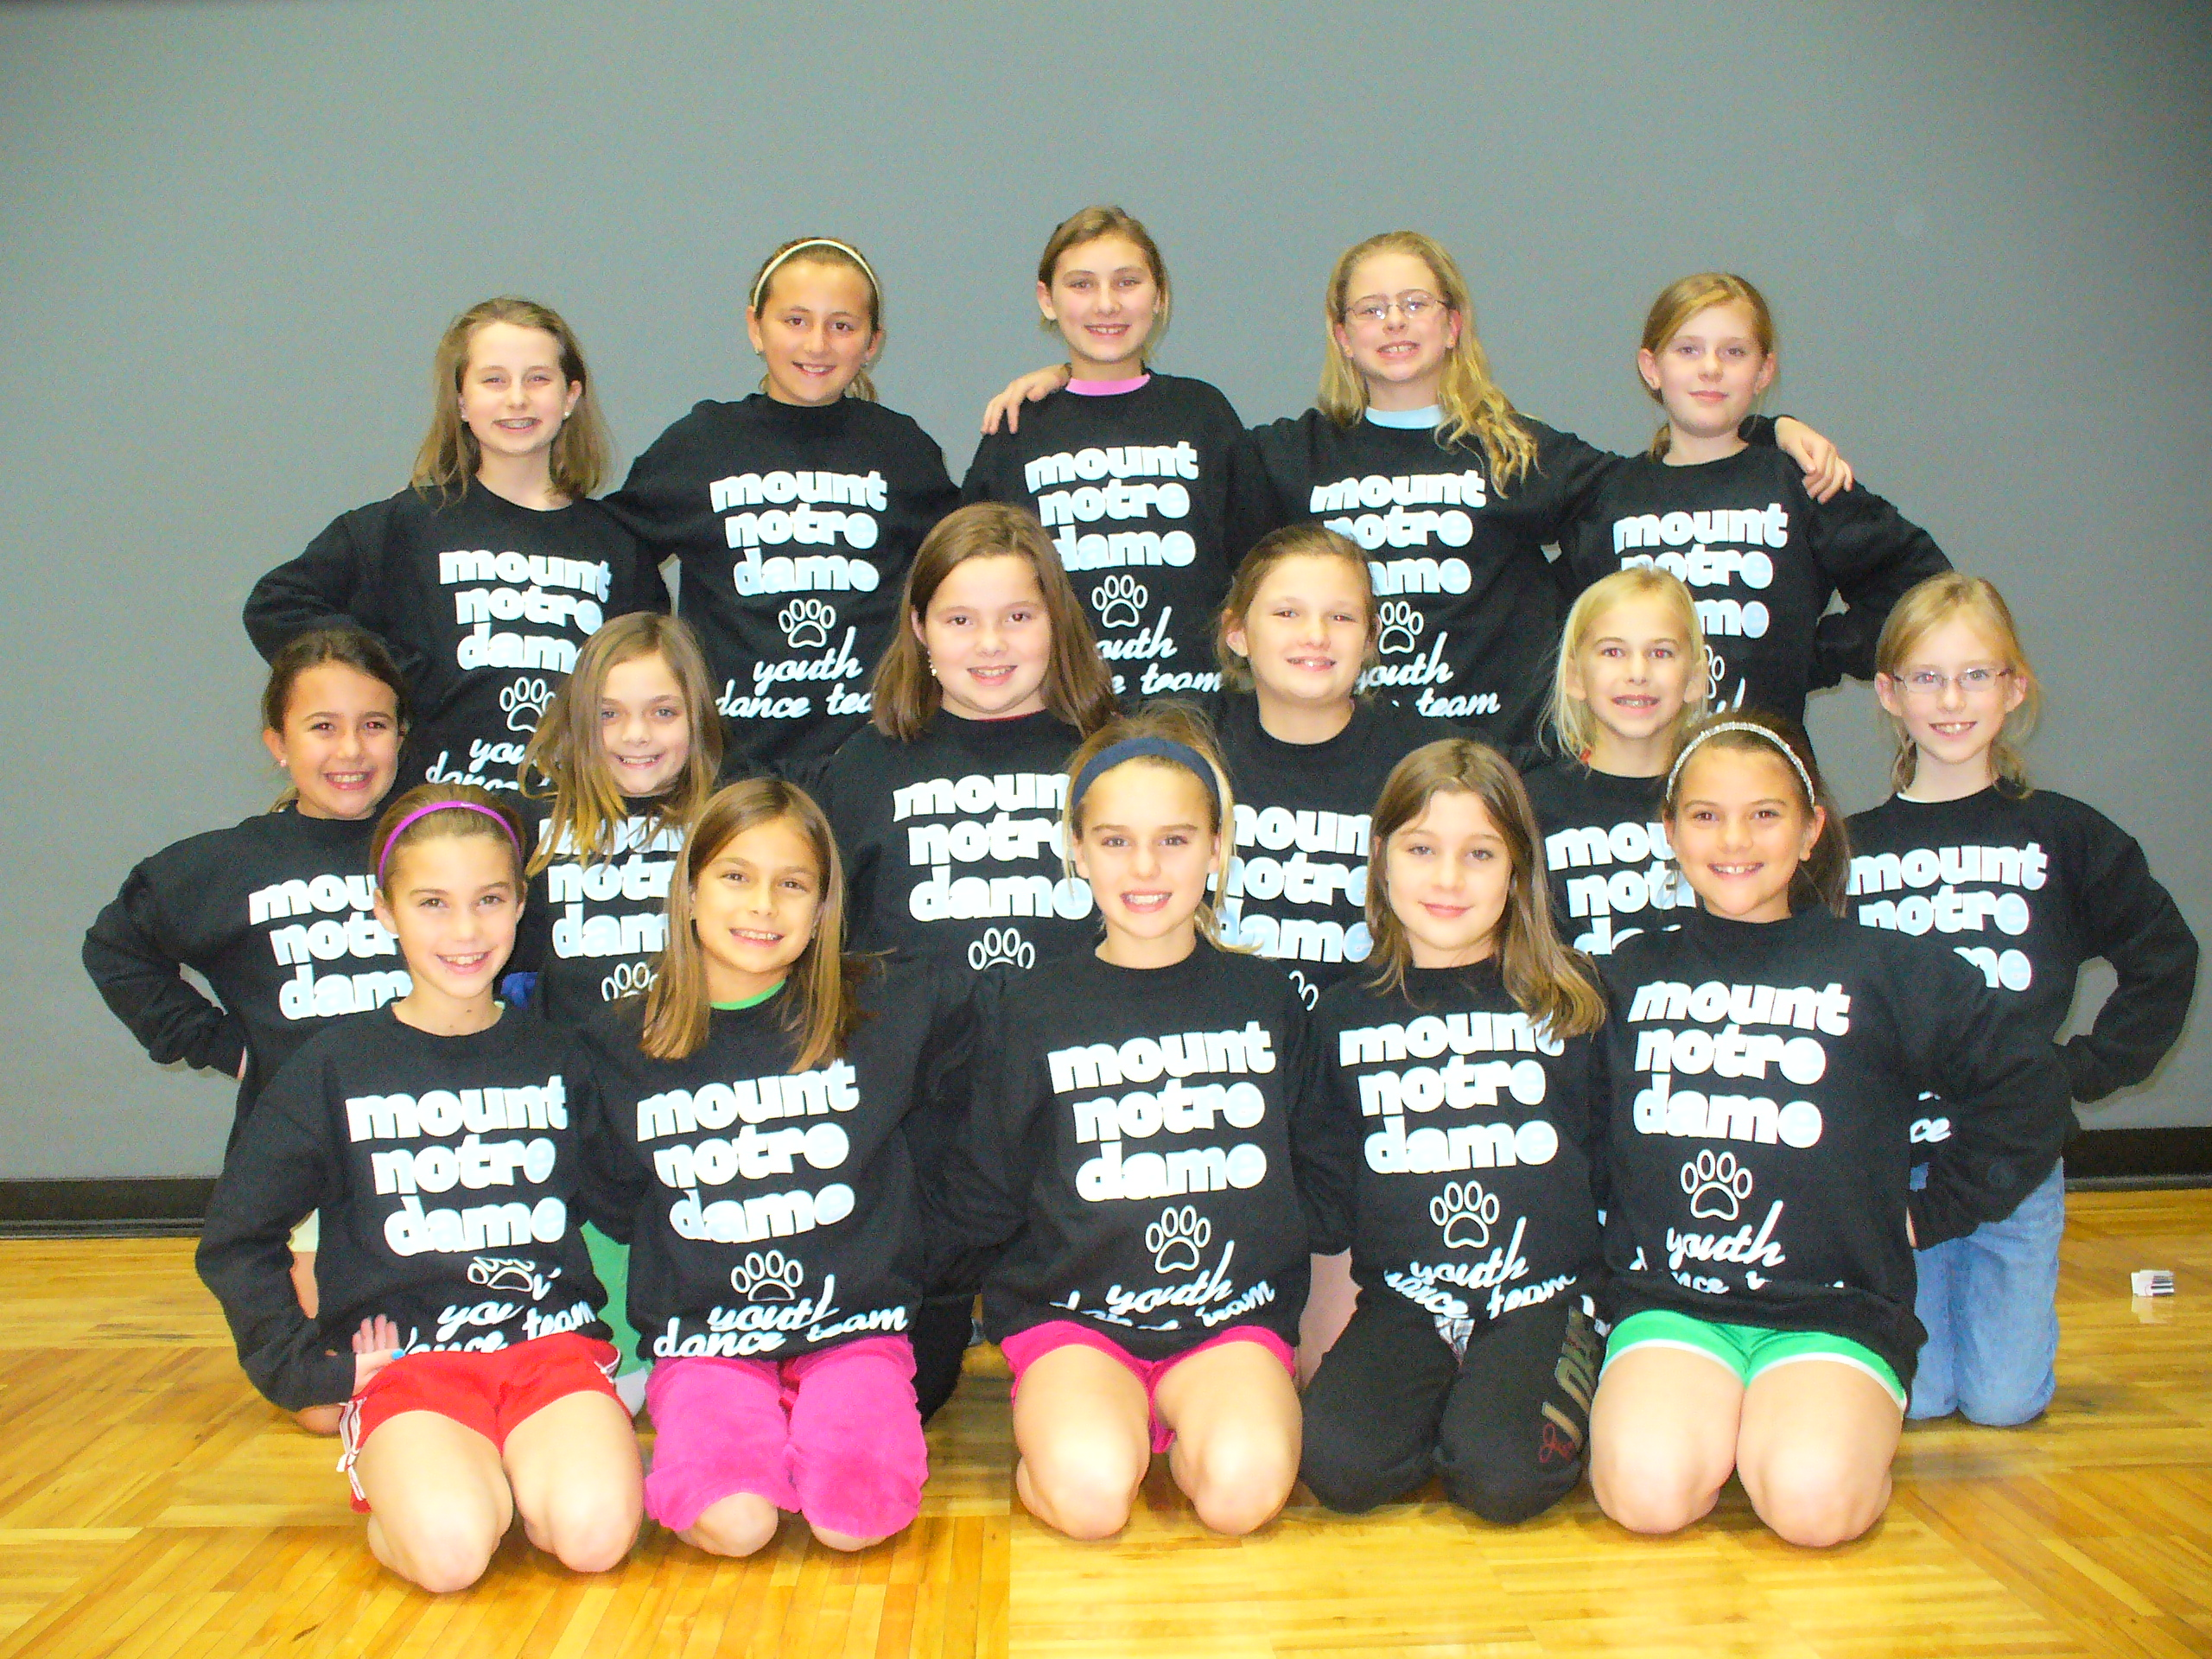 T shirt design youth - Mnd Cougars Youth Dance Team T Shirt Photo